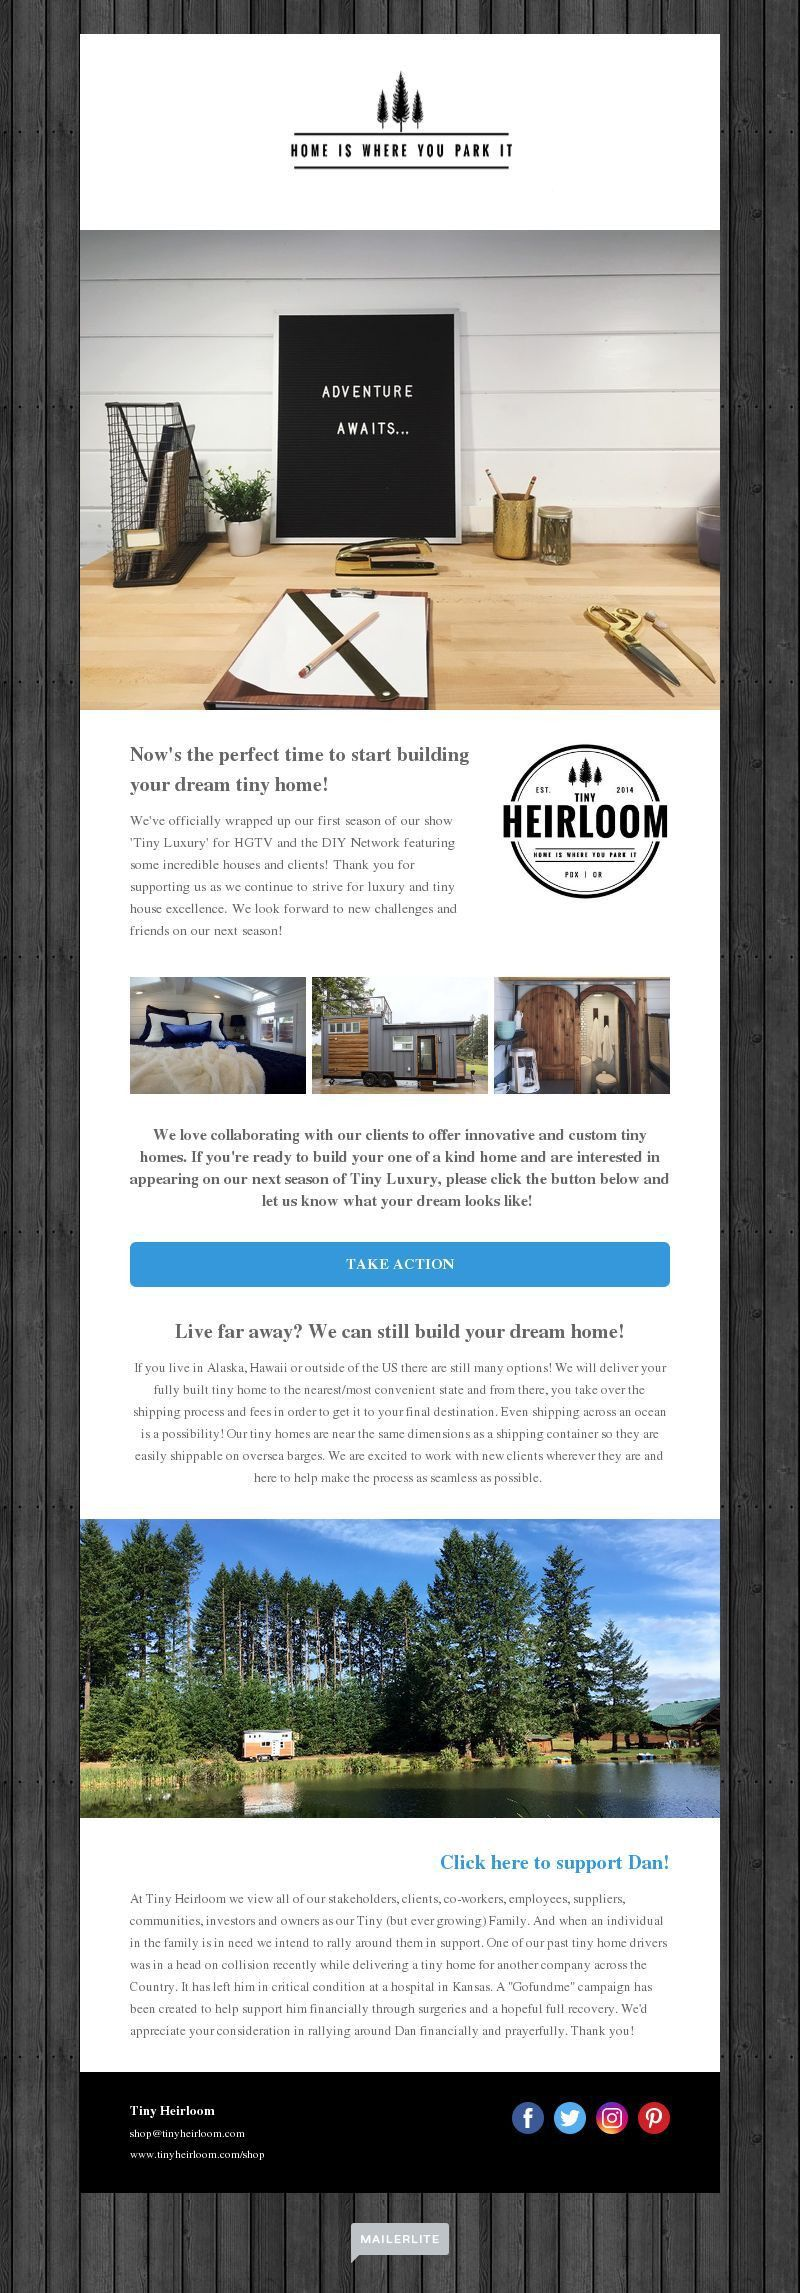 Travel Newsletter Design Gallery and Examples | MailerLite